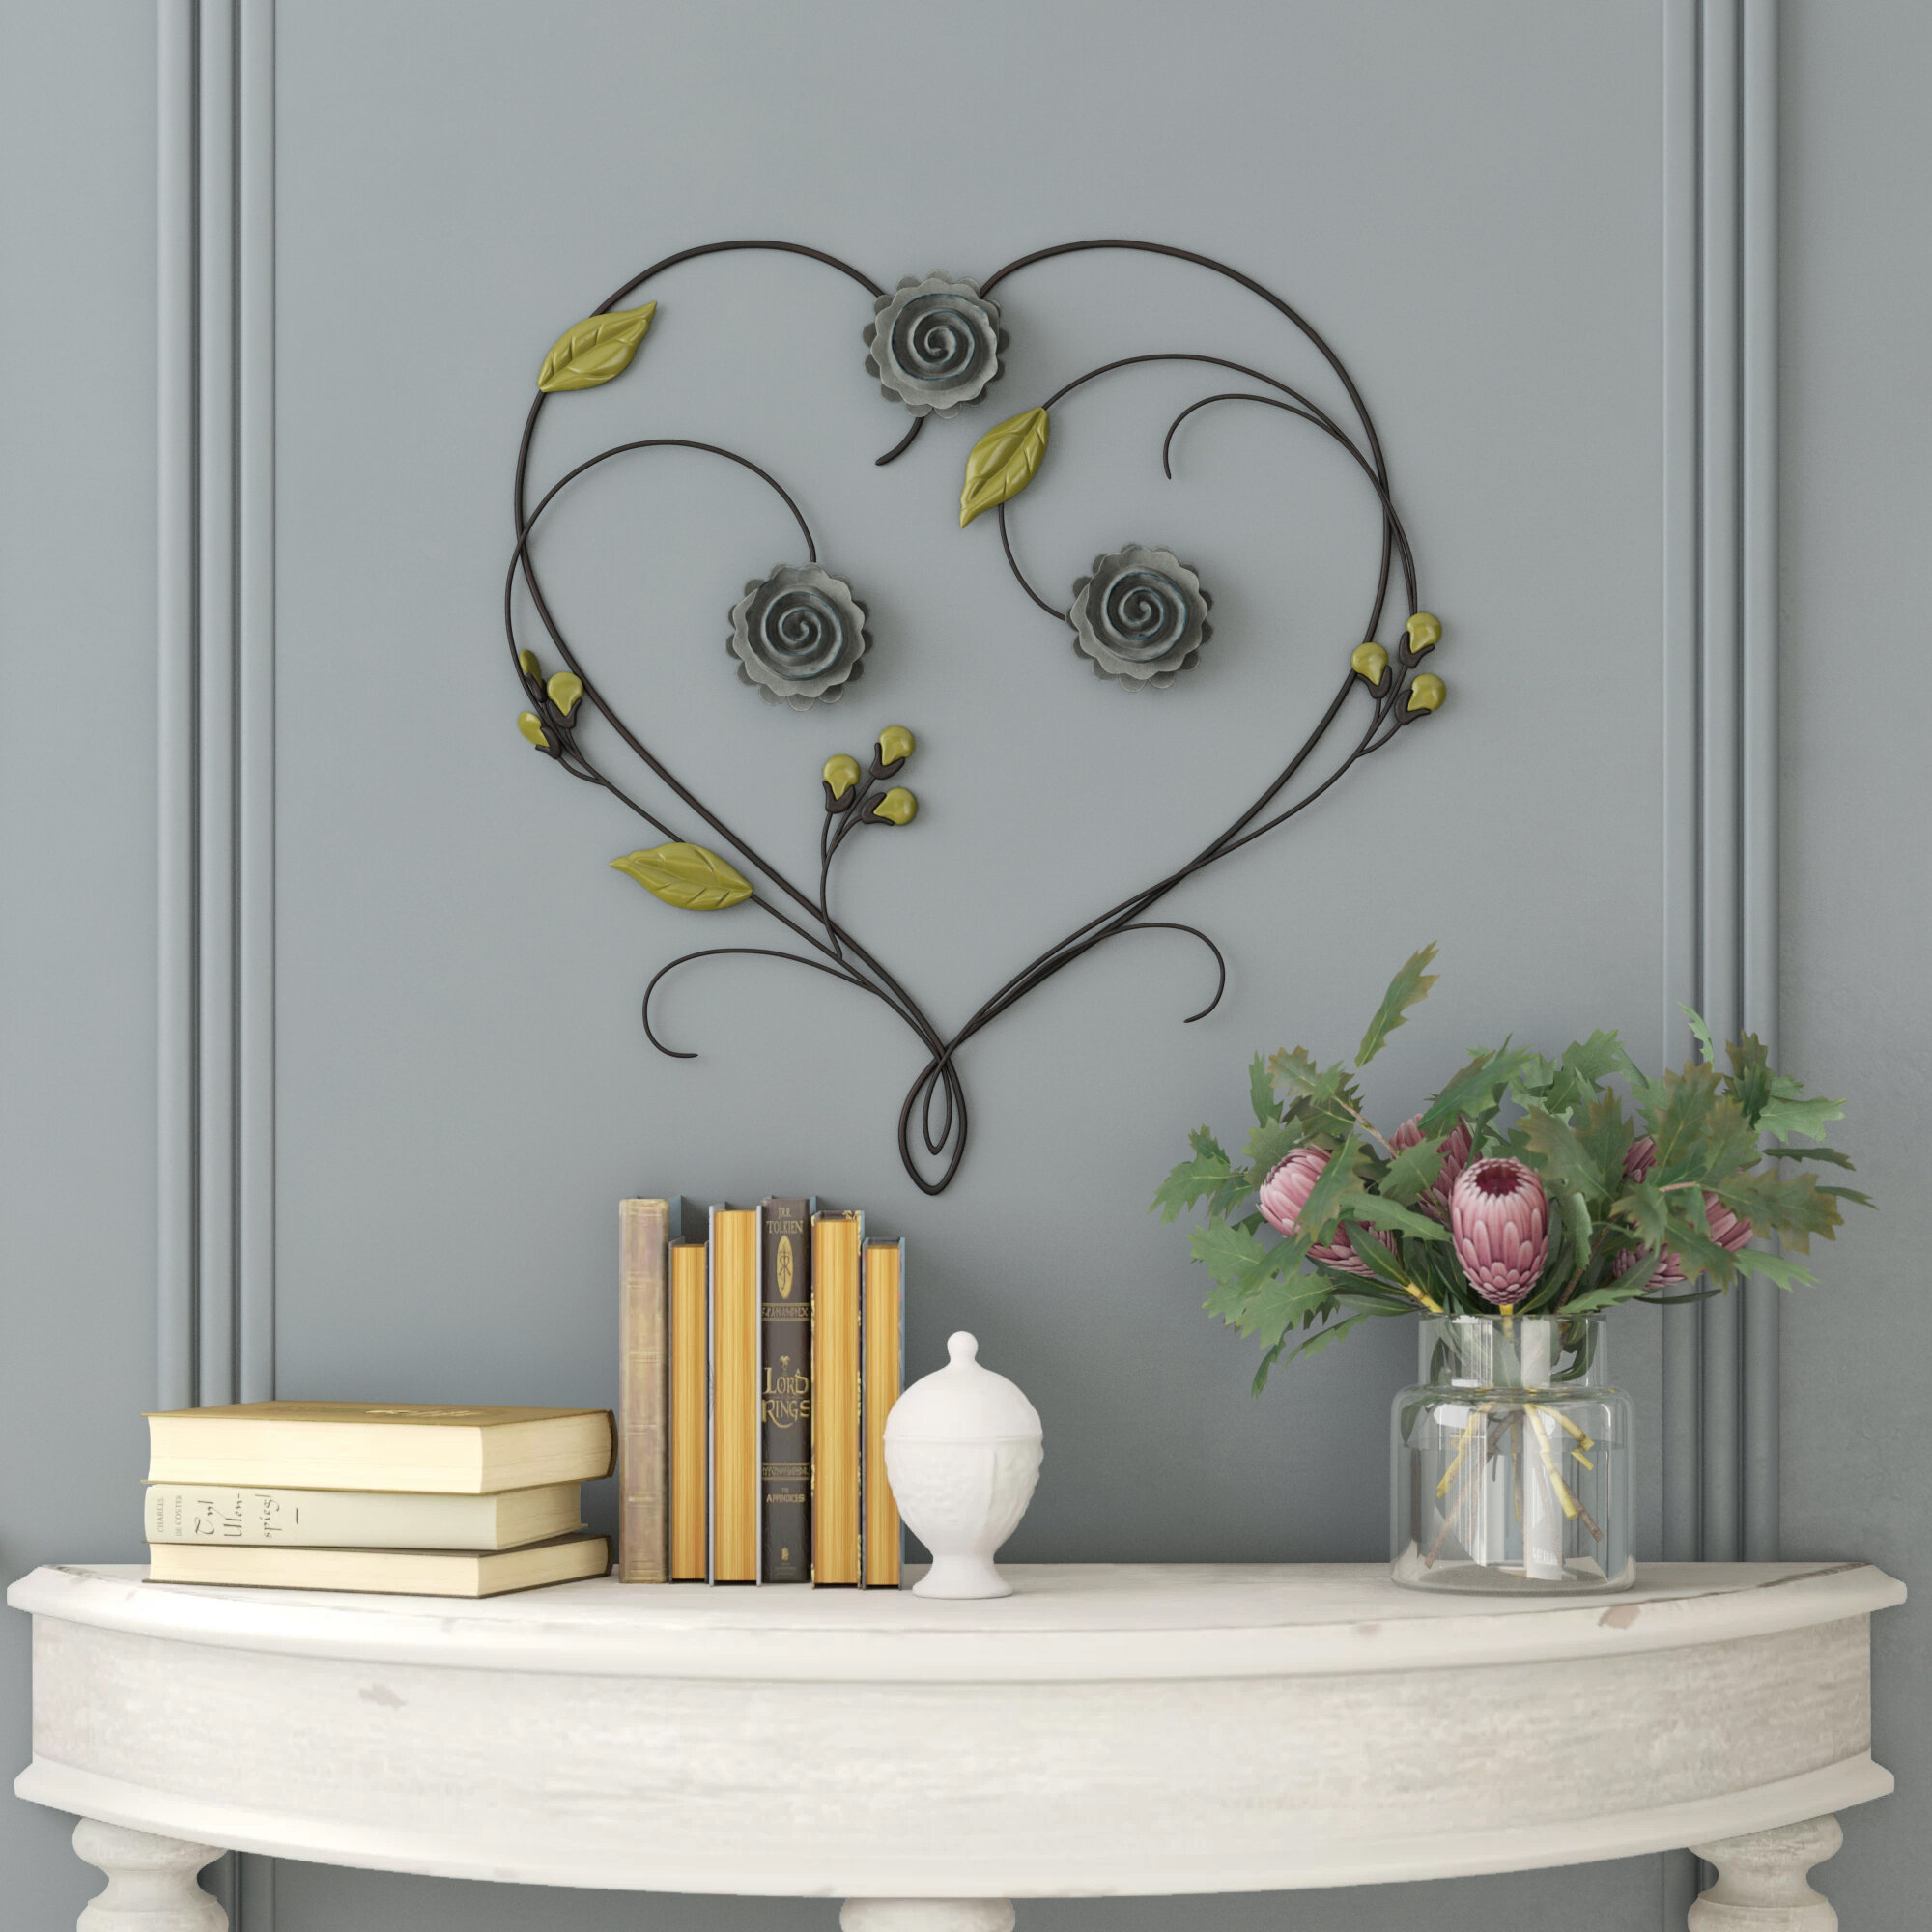 Bronze Wall Accents You'll Love In 2019 | Wayfair Intended For Rings Wall Decor By Wrought Studio (View 19 of 30)